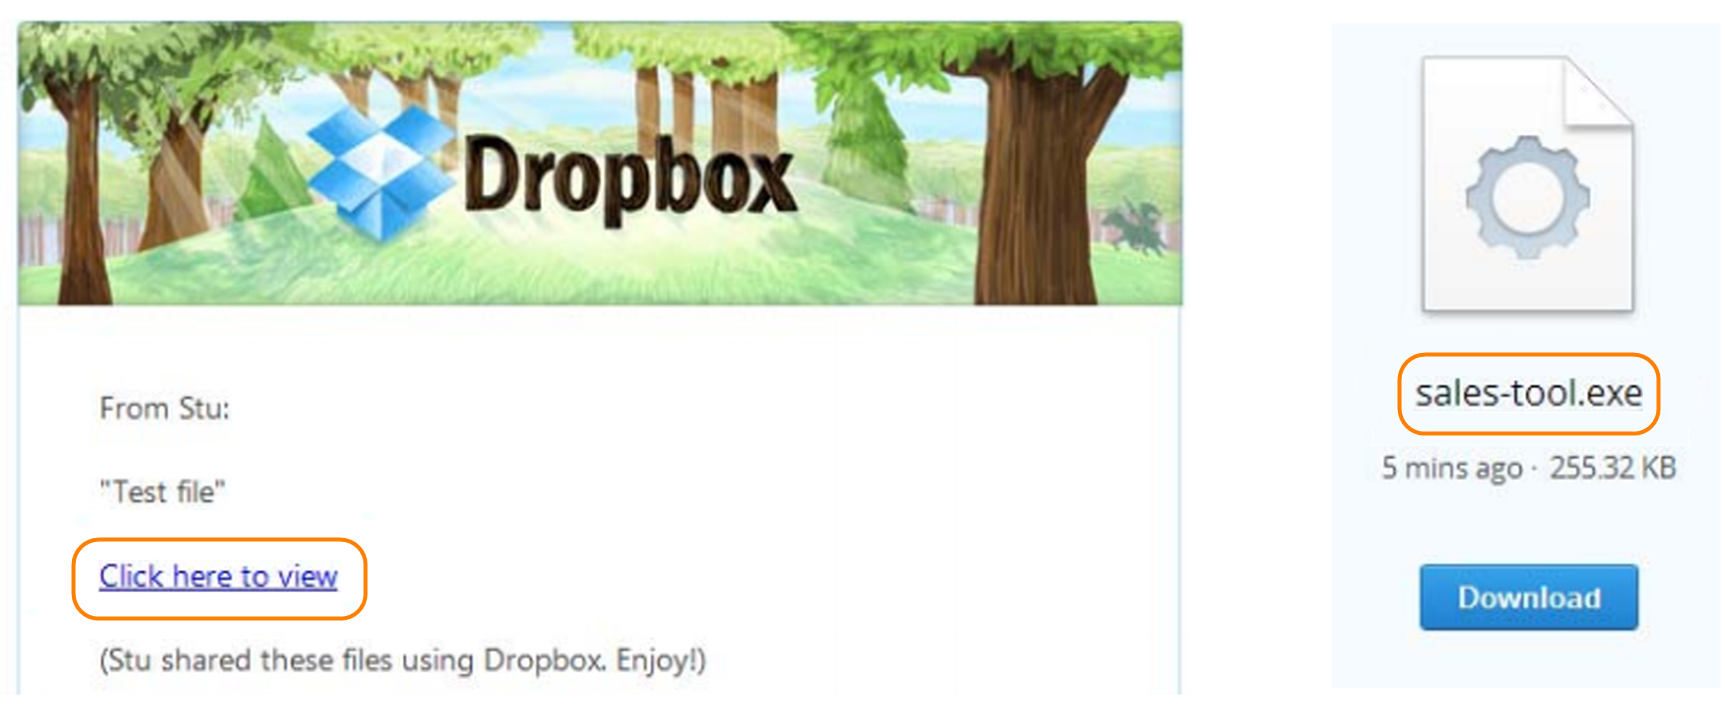 example-dropbox-email.png